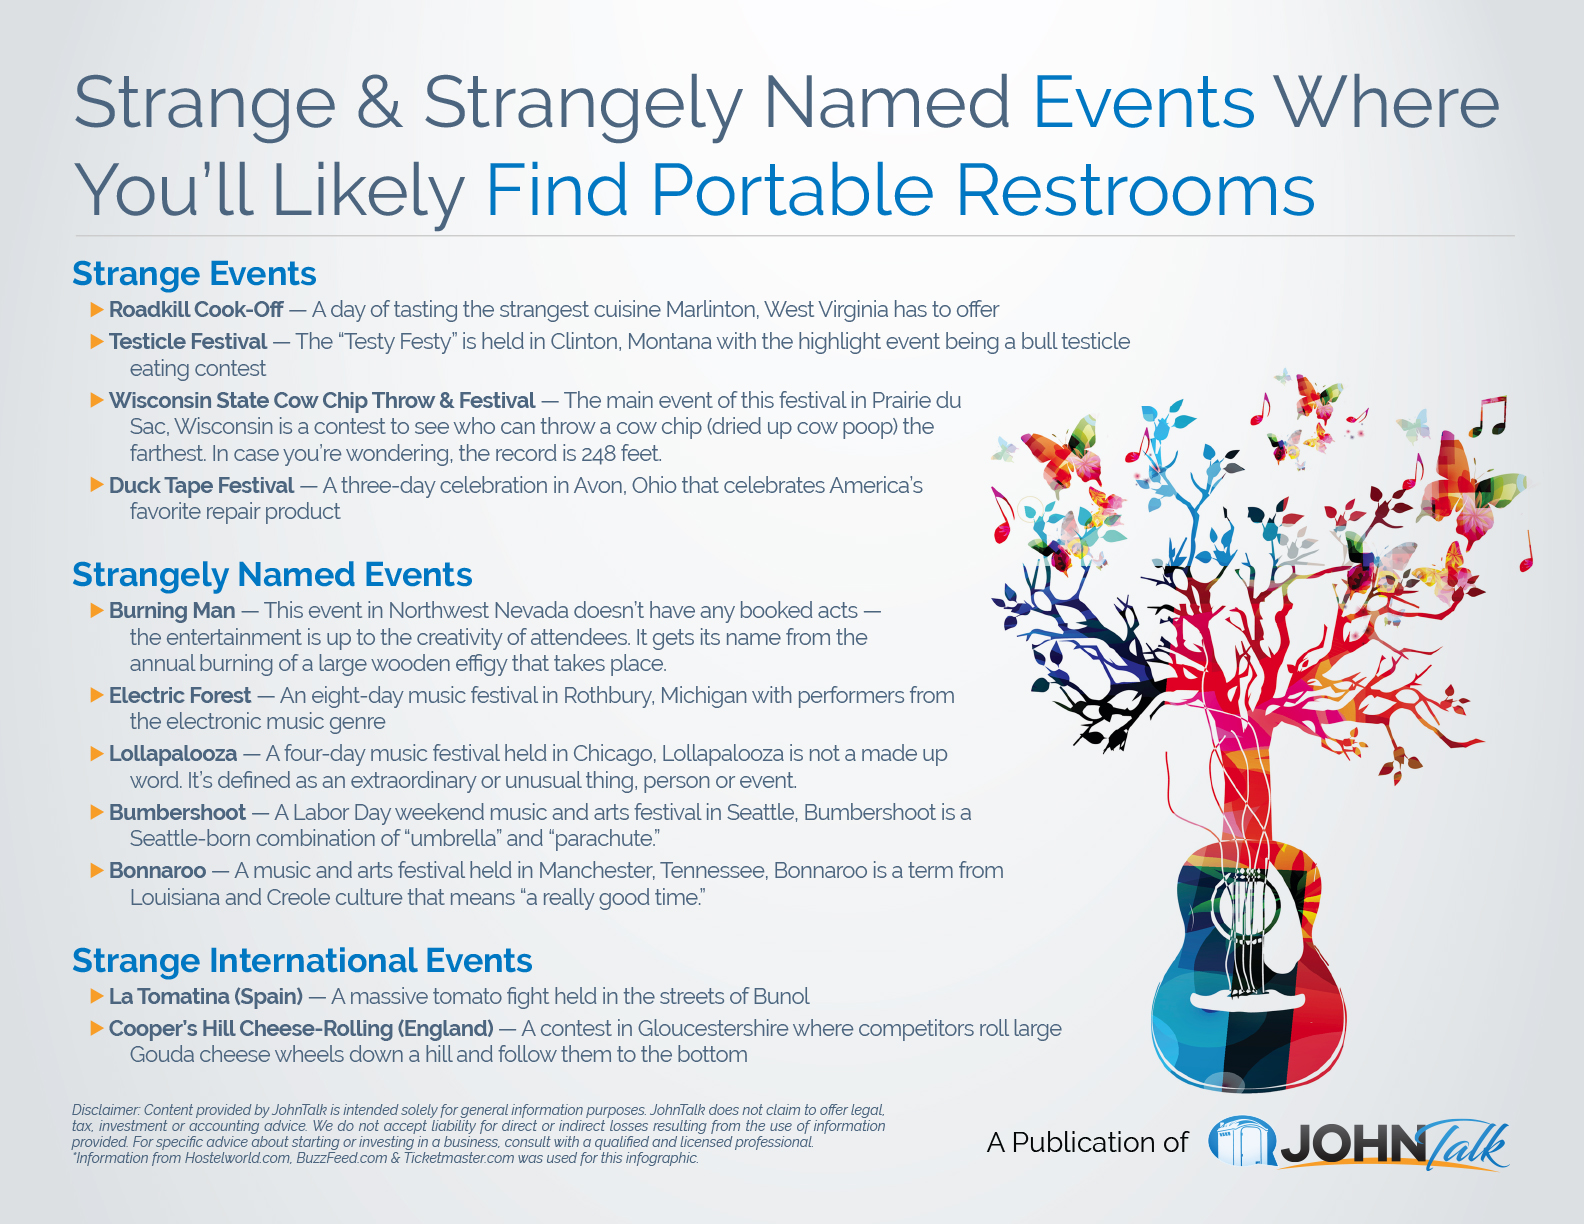 Strange & Strangely Named Events Where You'll Likely Find Portable Restrooms